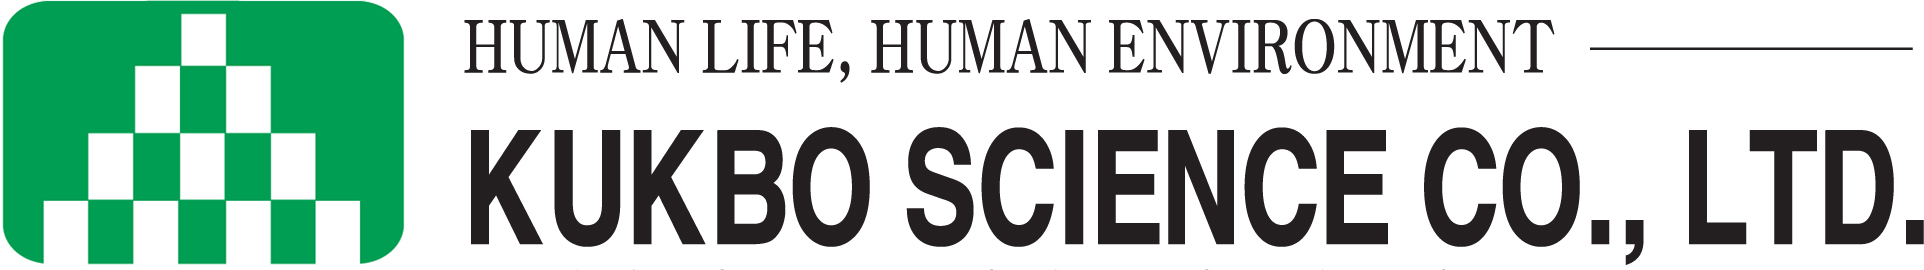 Kukbo Science Co., Ltd. logo